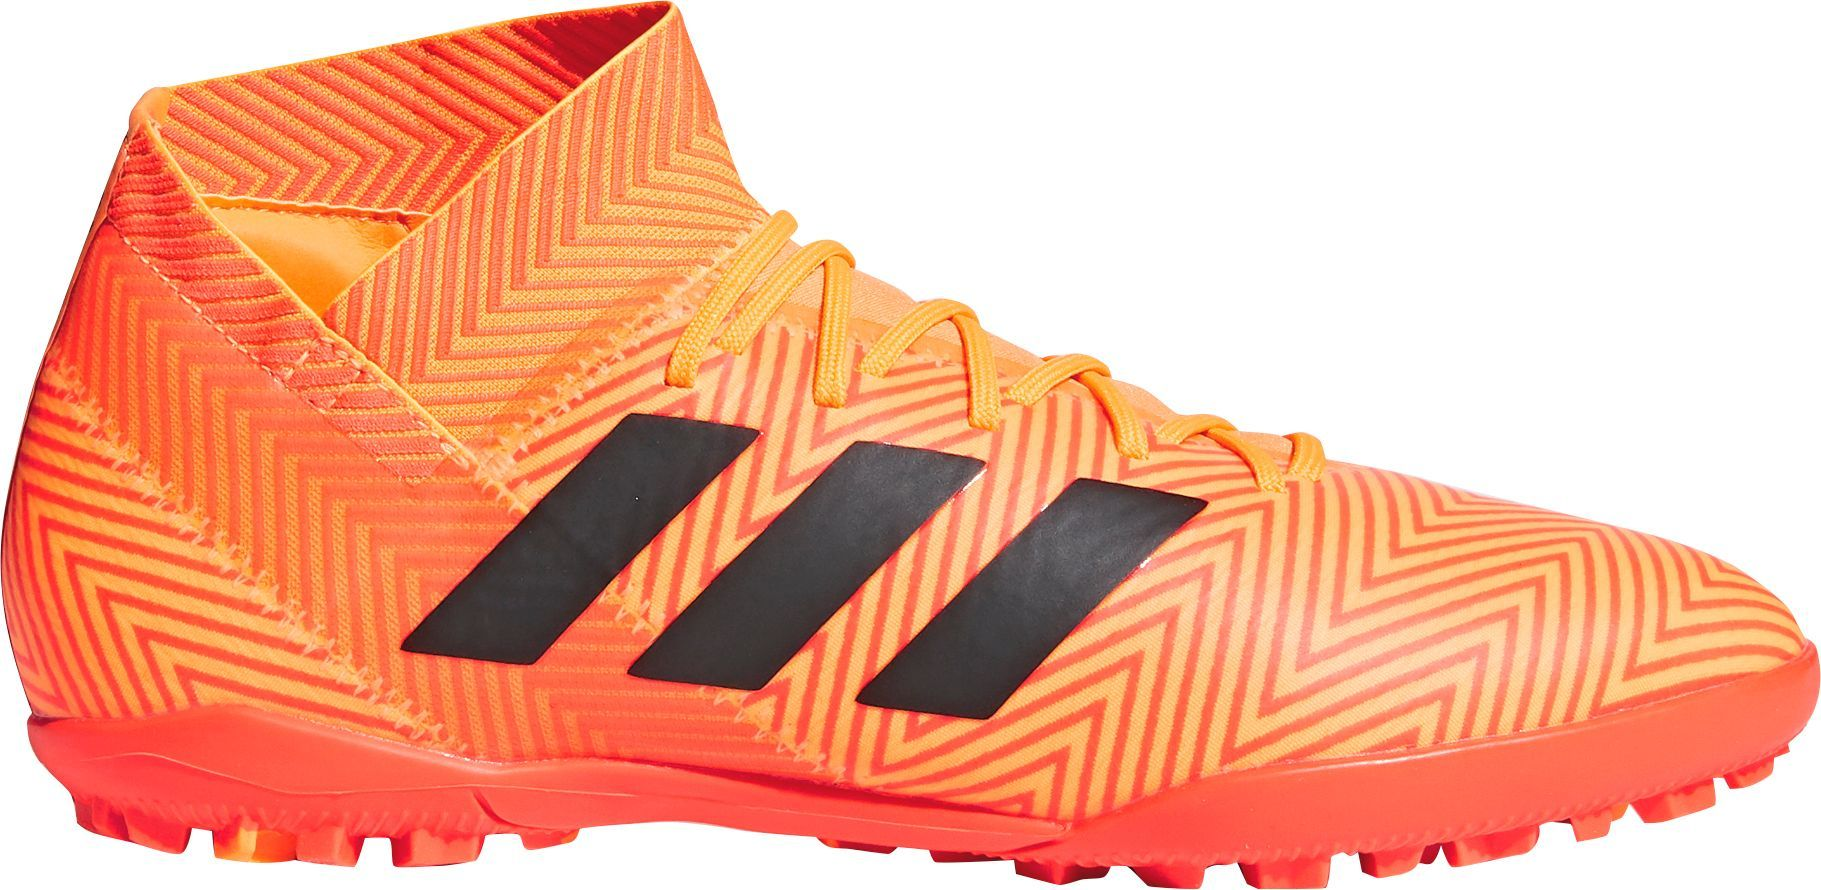 promo code a9709 695b4 adidas Men s Nemeziz Tango 18.3 Turf Soccer Cleats, Size  13.0, Orange